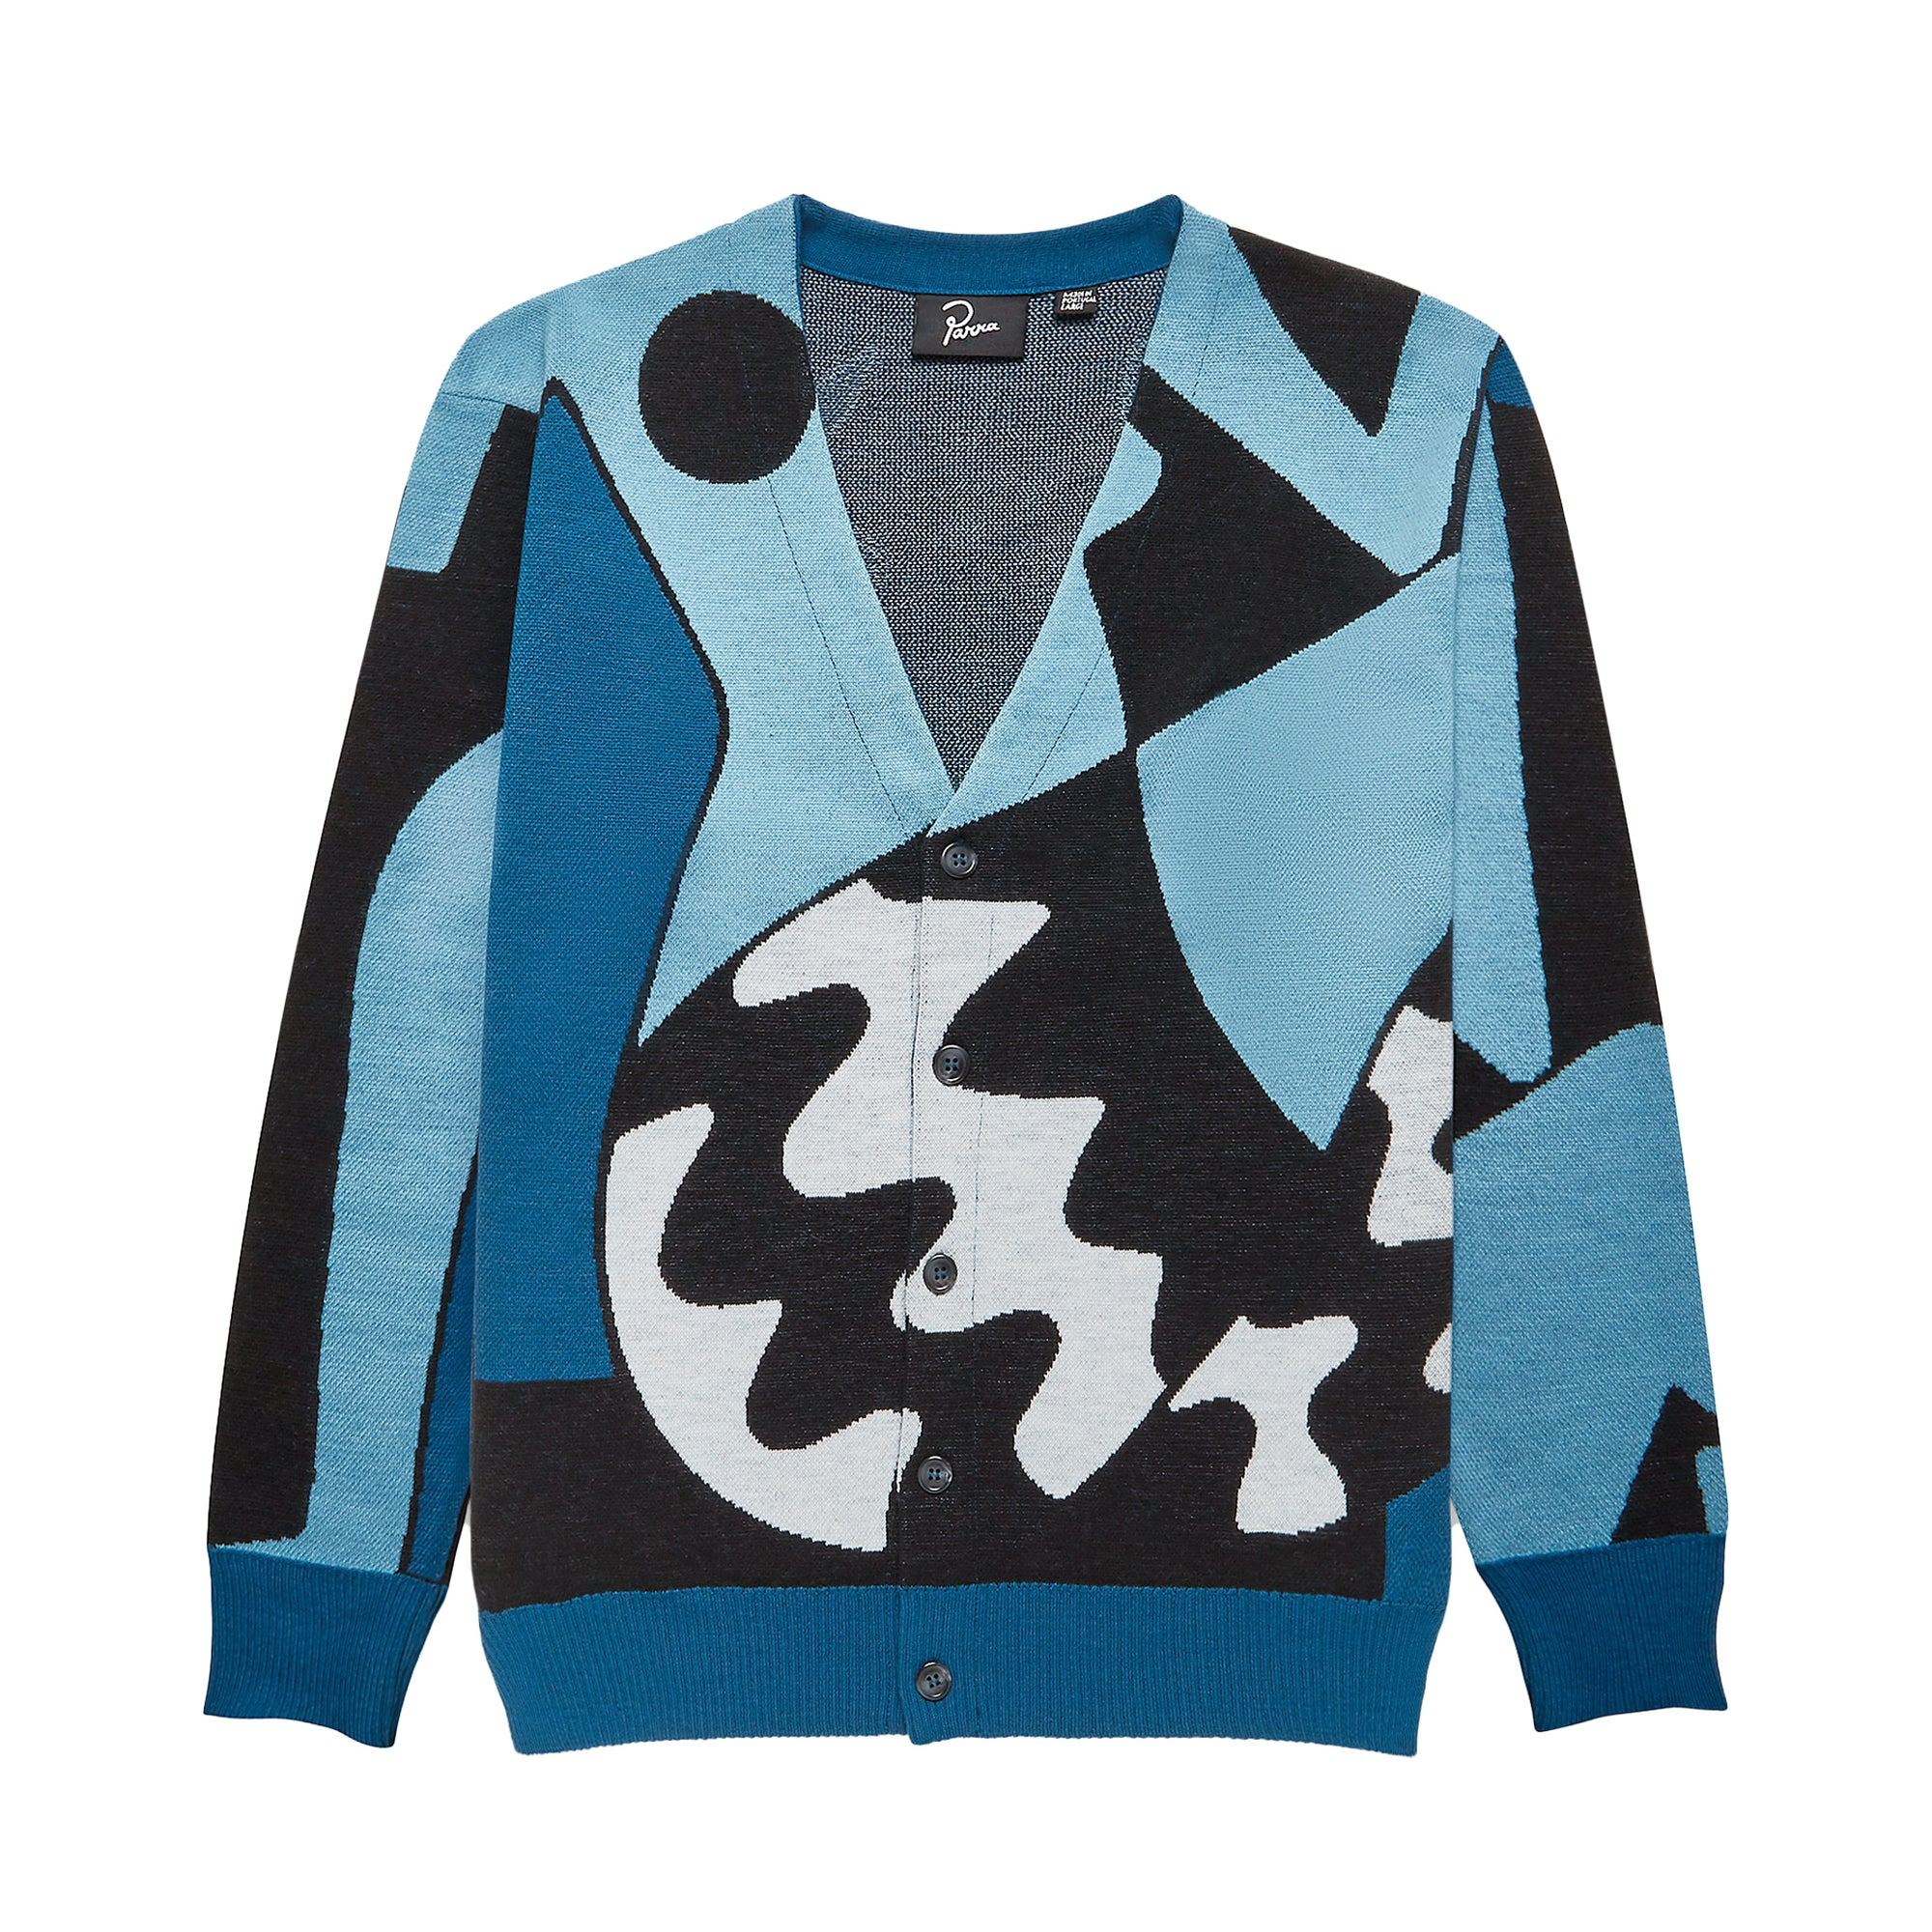 Parra Too Loud Knitted Cardigan: Multi - The Union Project